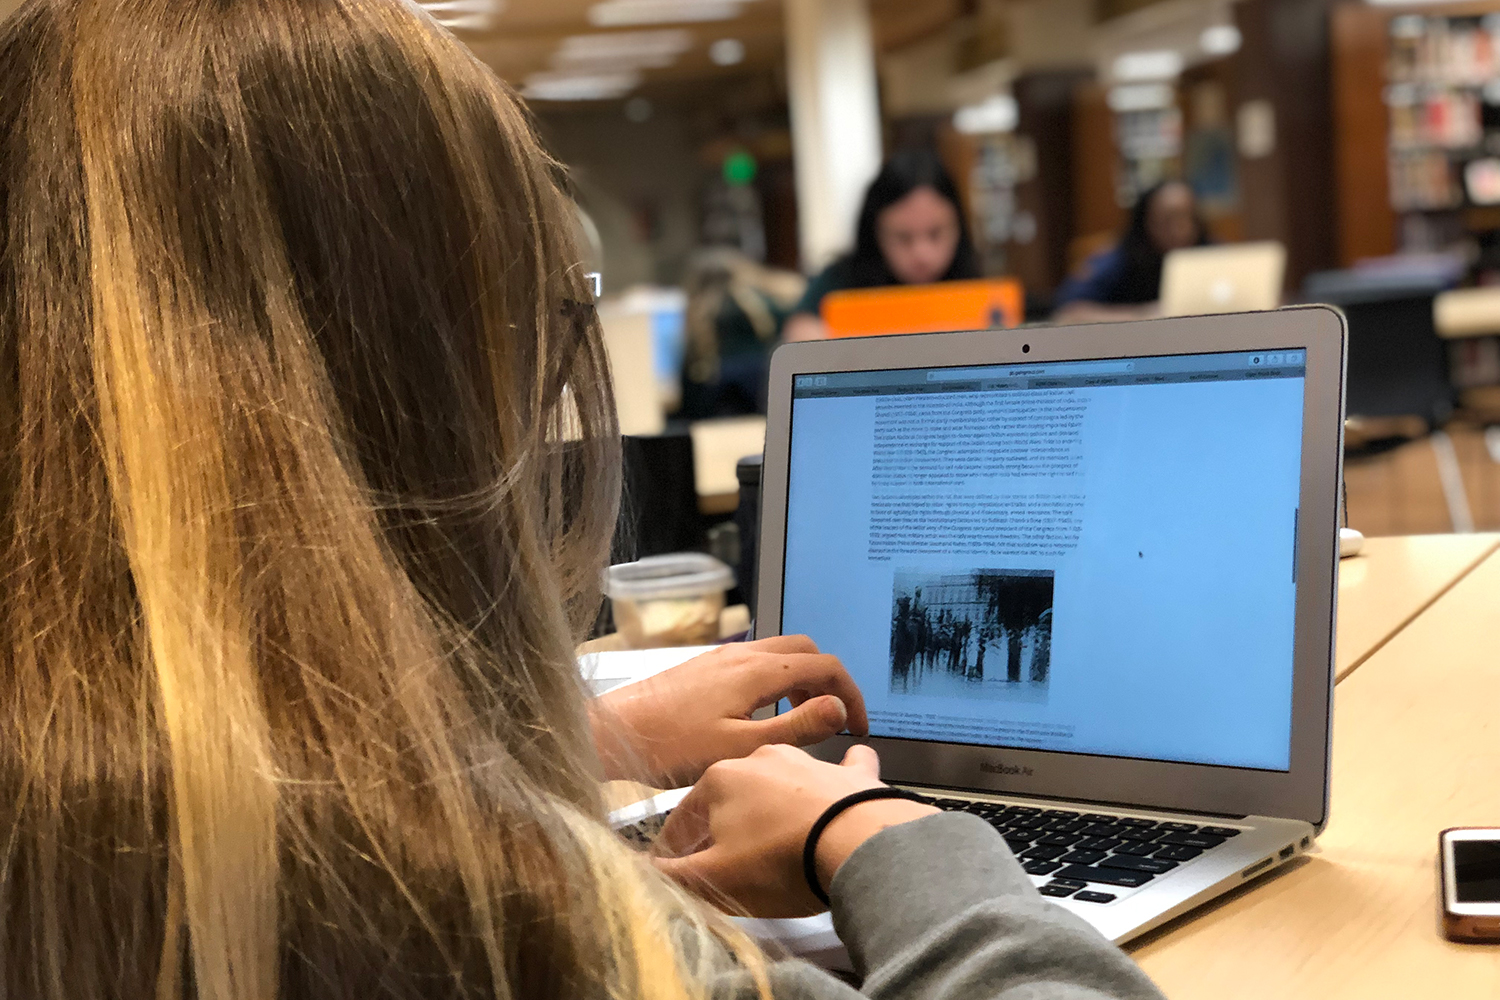 Sophomore Isa Ionazzi does research for a project in history class. A study published in 2017 by the Stanford Graduate School of Education found that 80% of the students tested couldn't identify biased content from mainstream media.